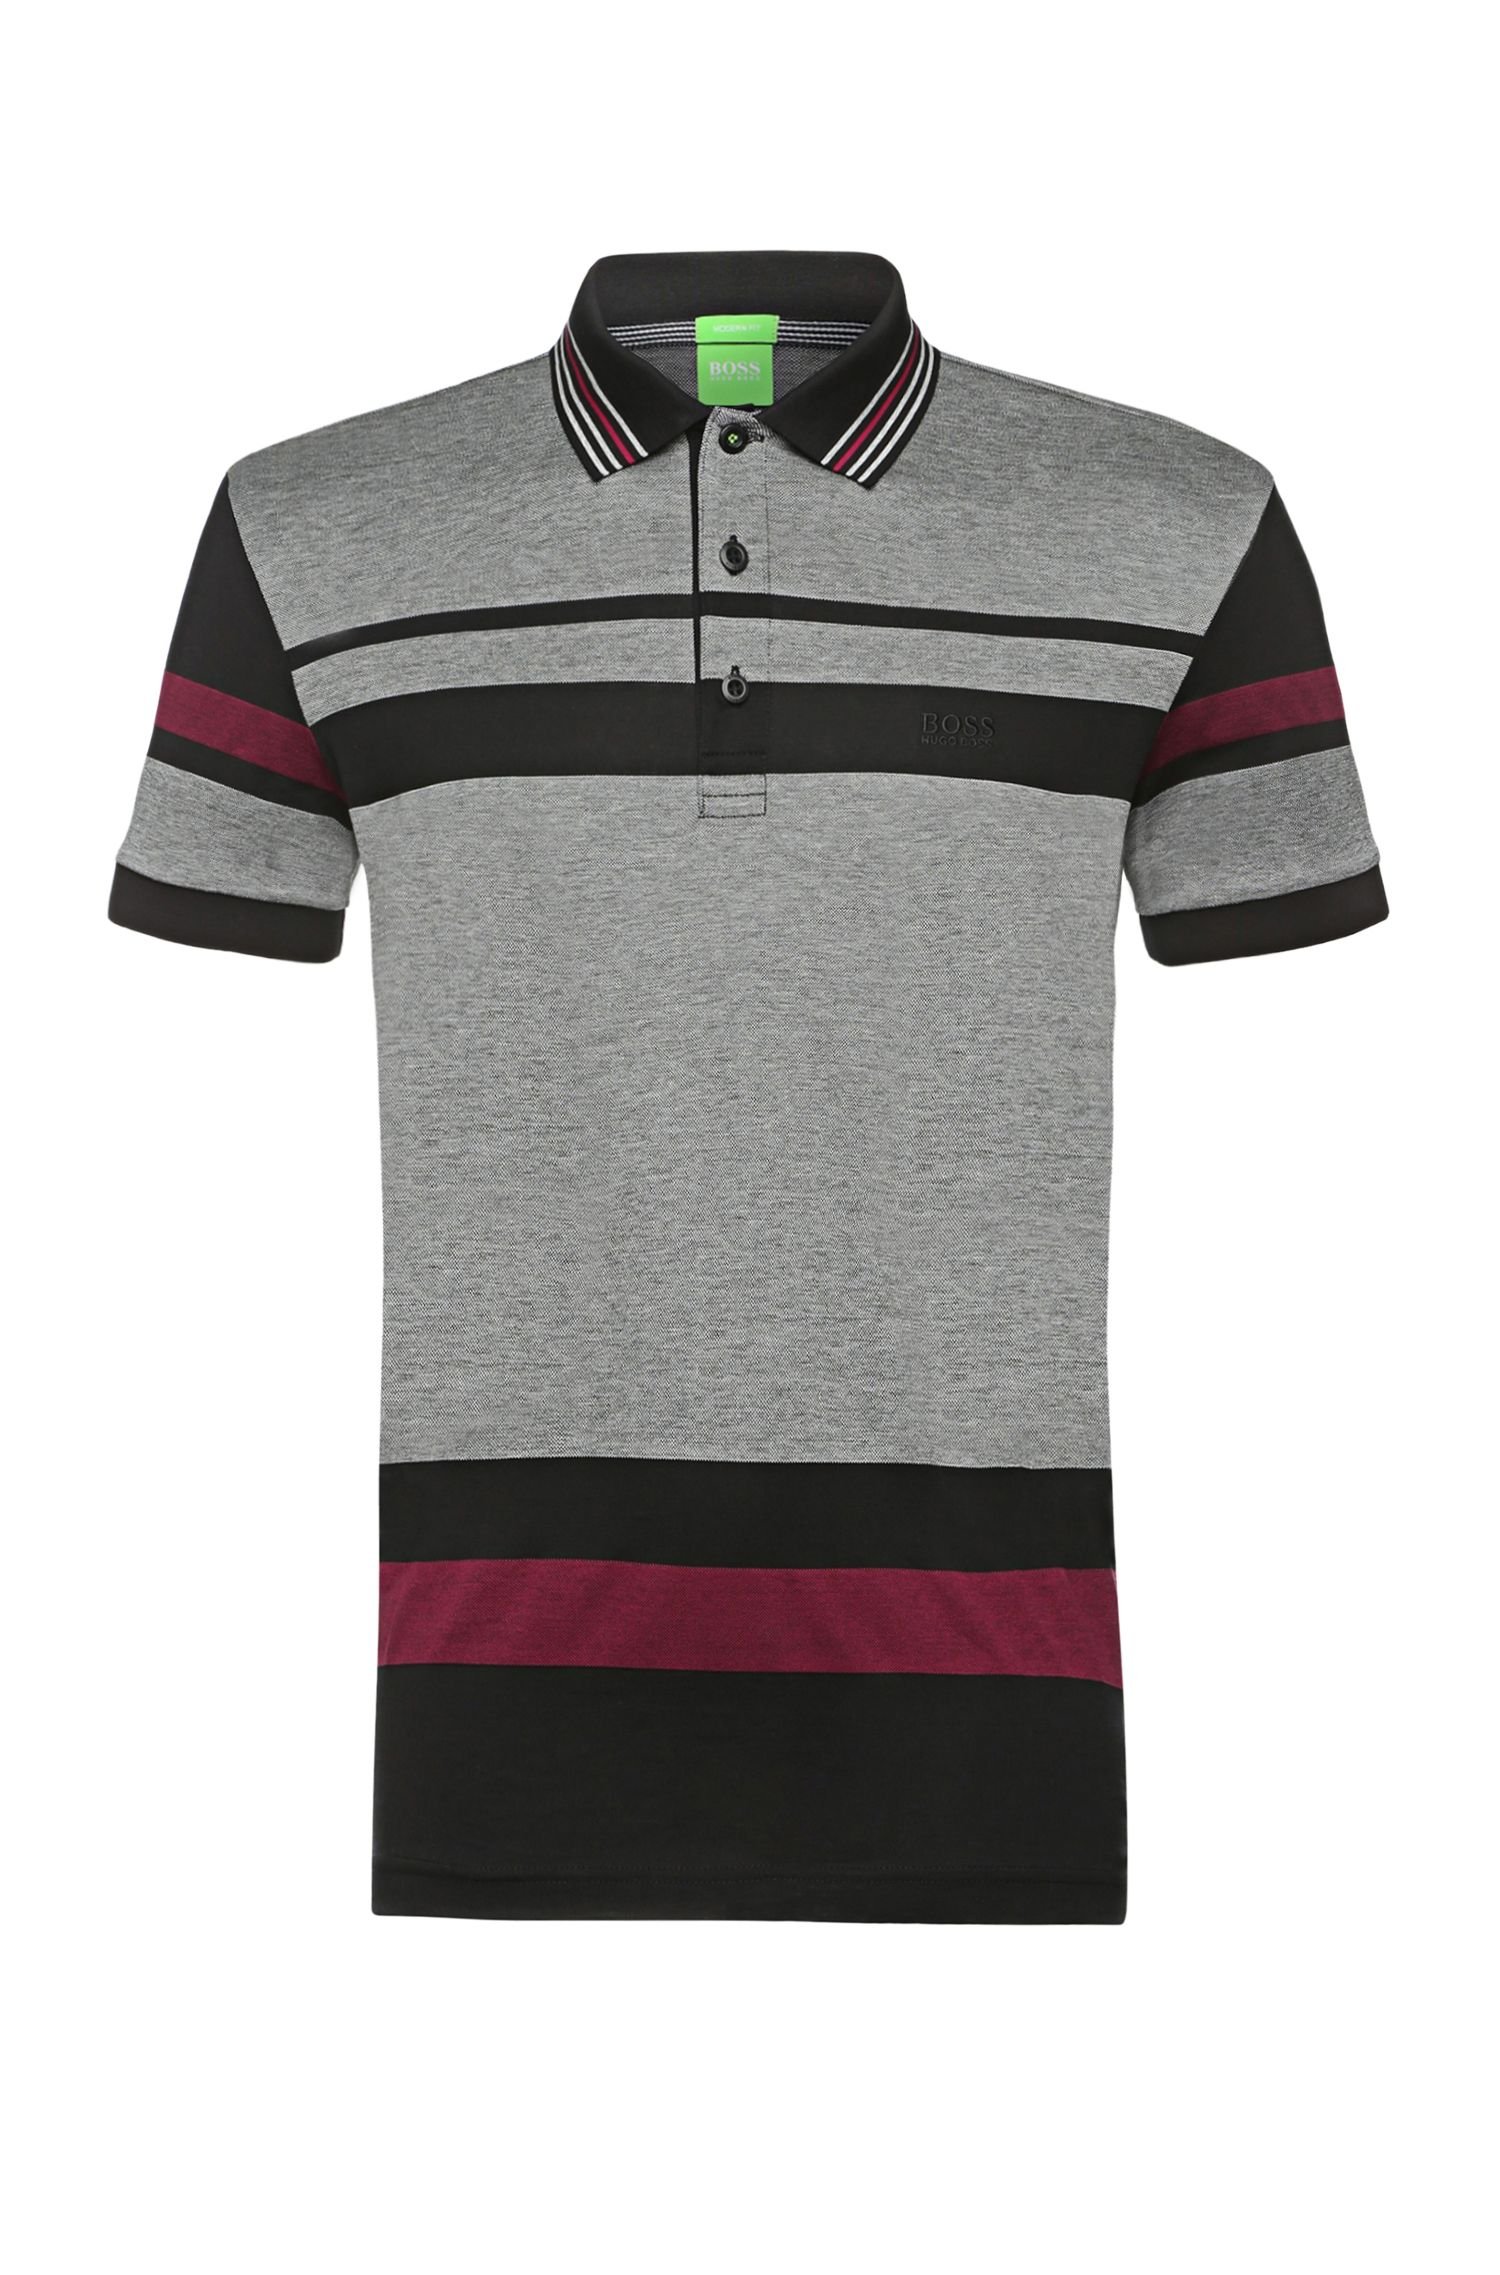 'Paddy' | Modern Fit, Pique Knit Striped Polo